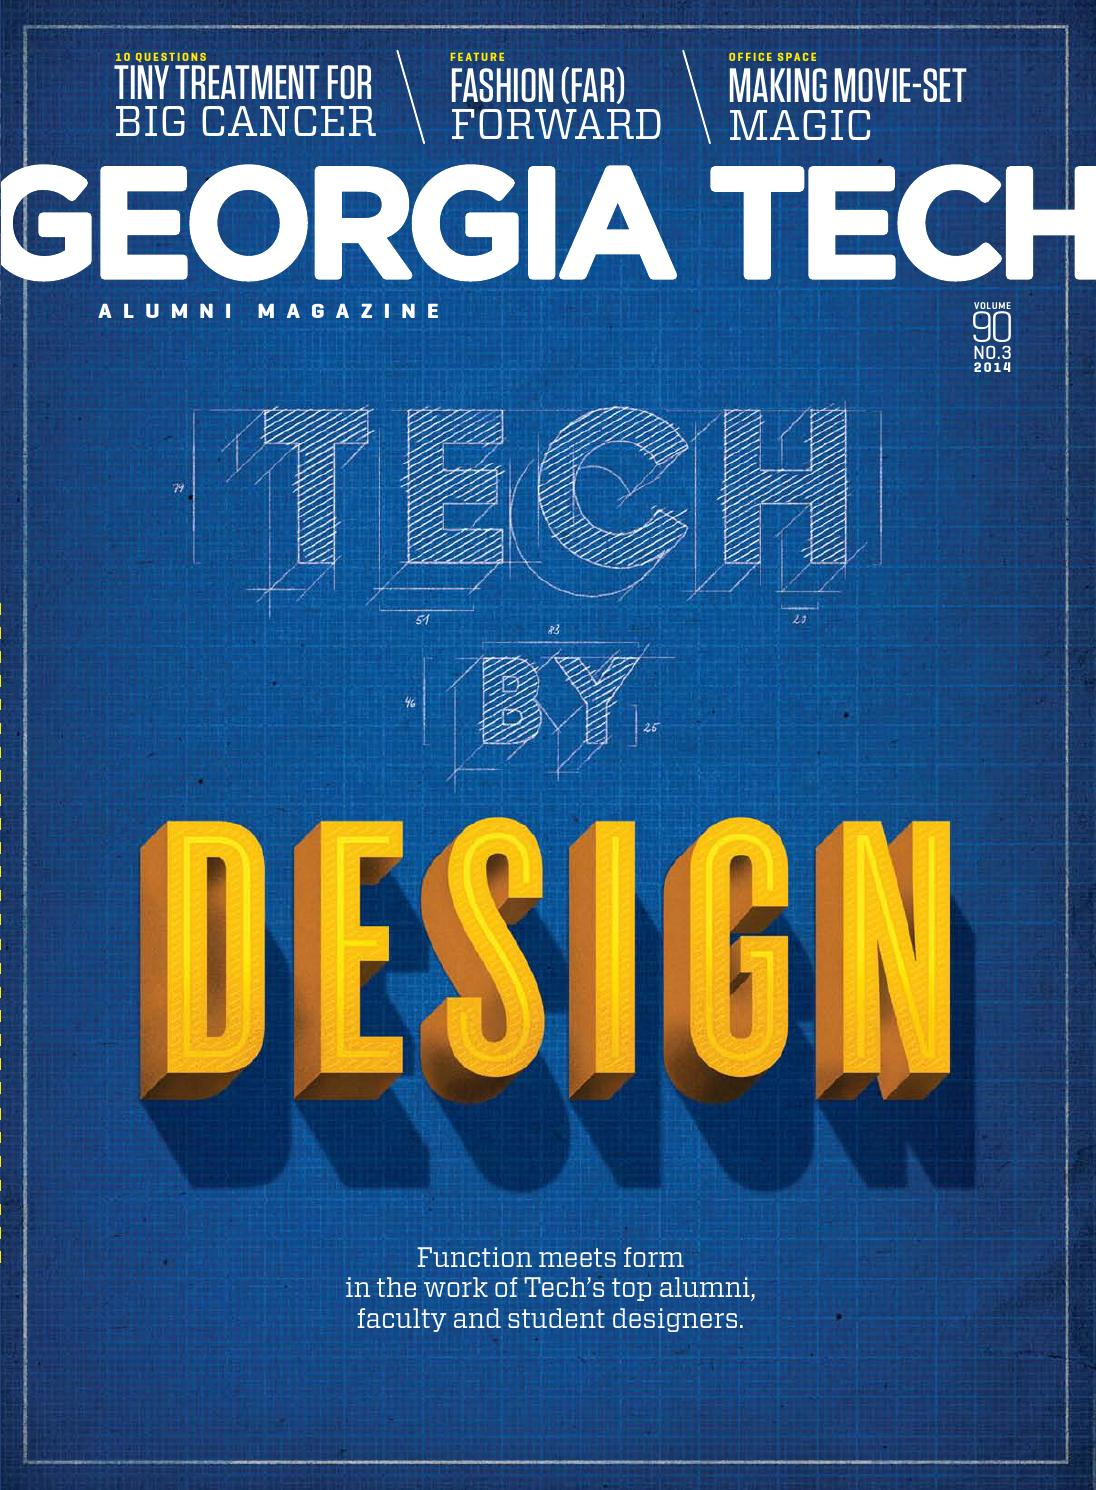 What are my chances of getting into georgia tech/ emory/ GSU?